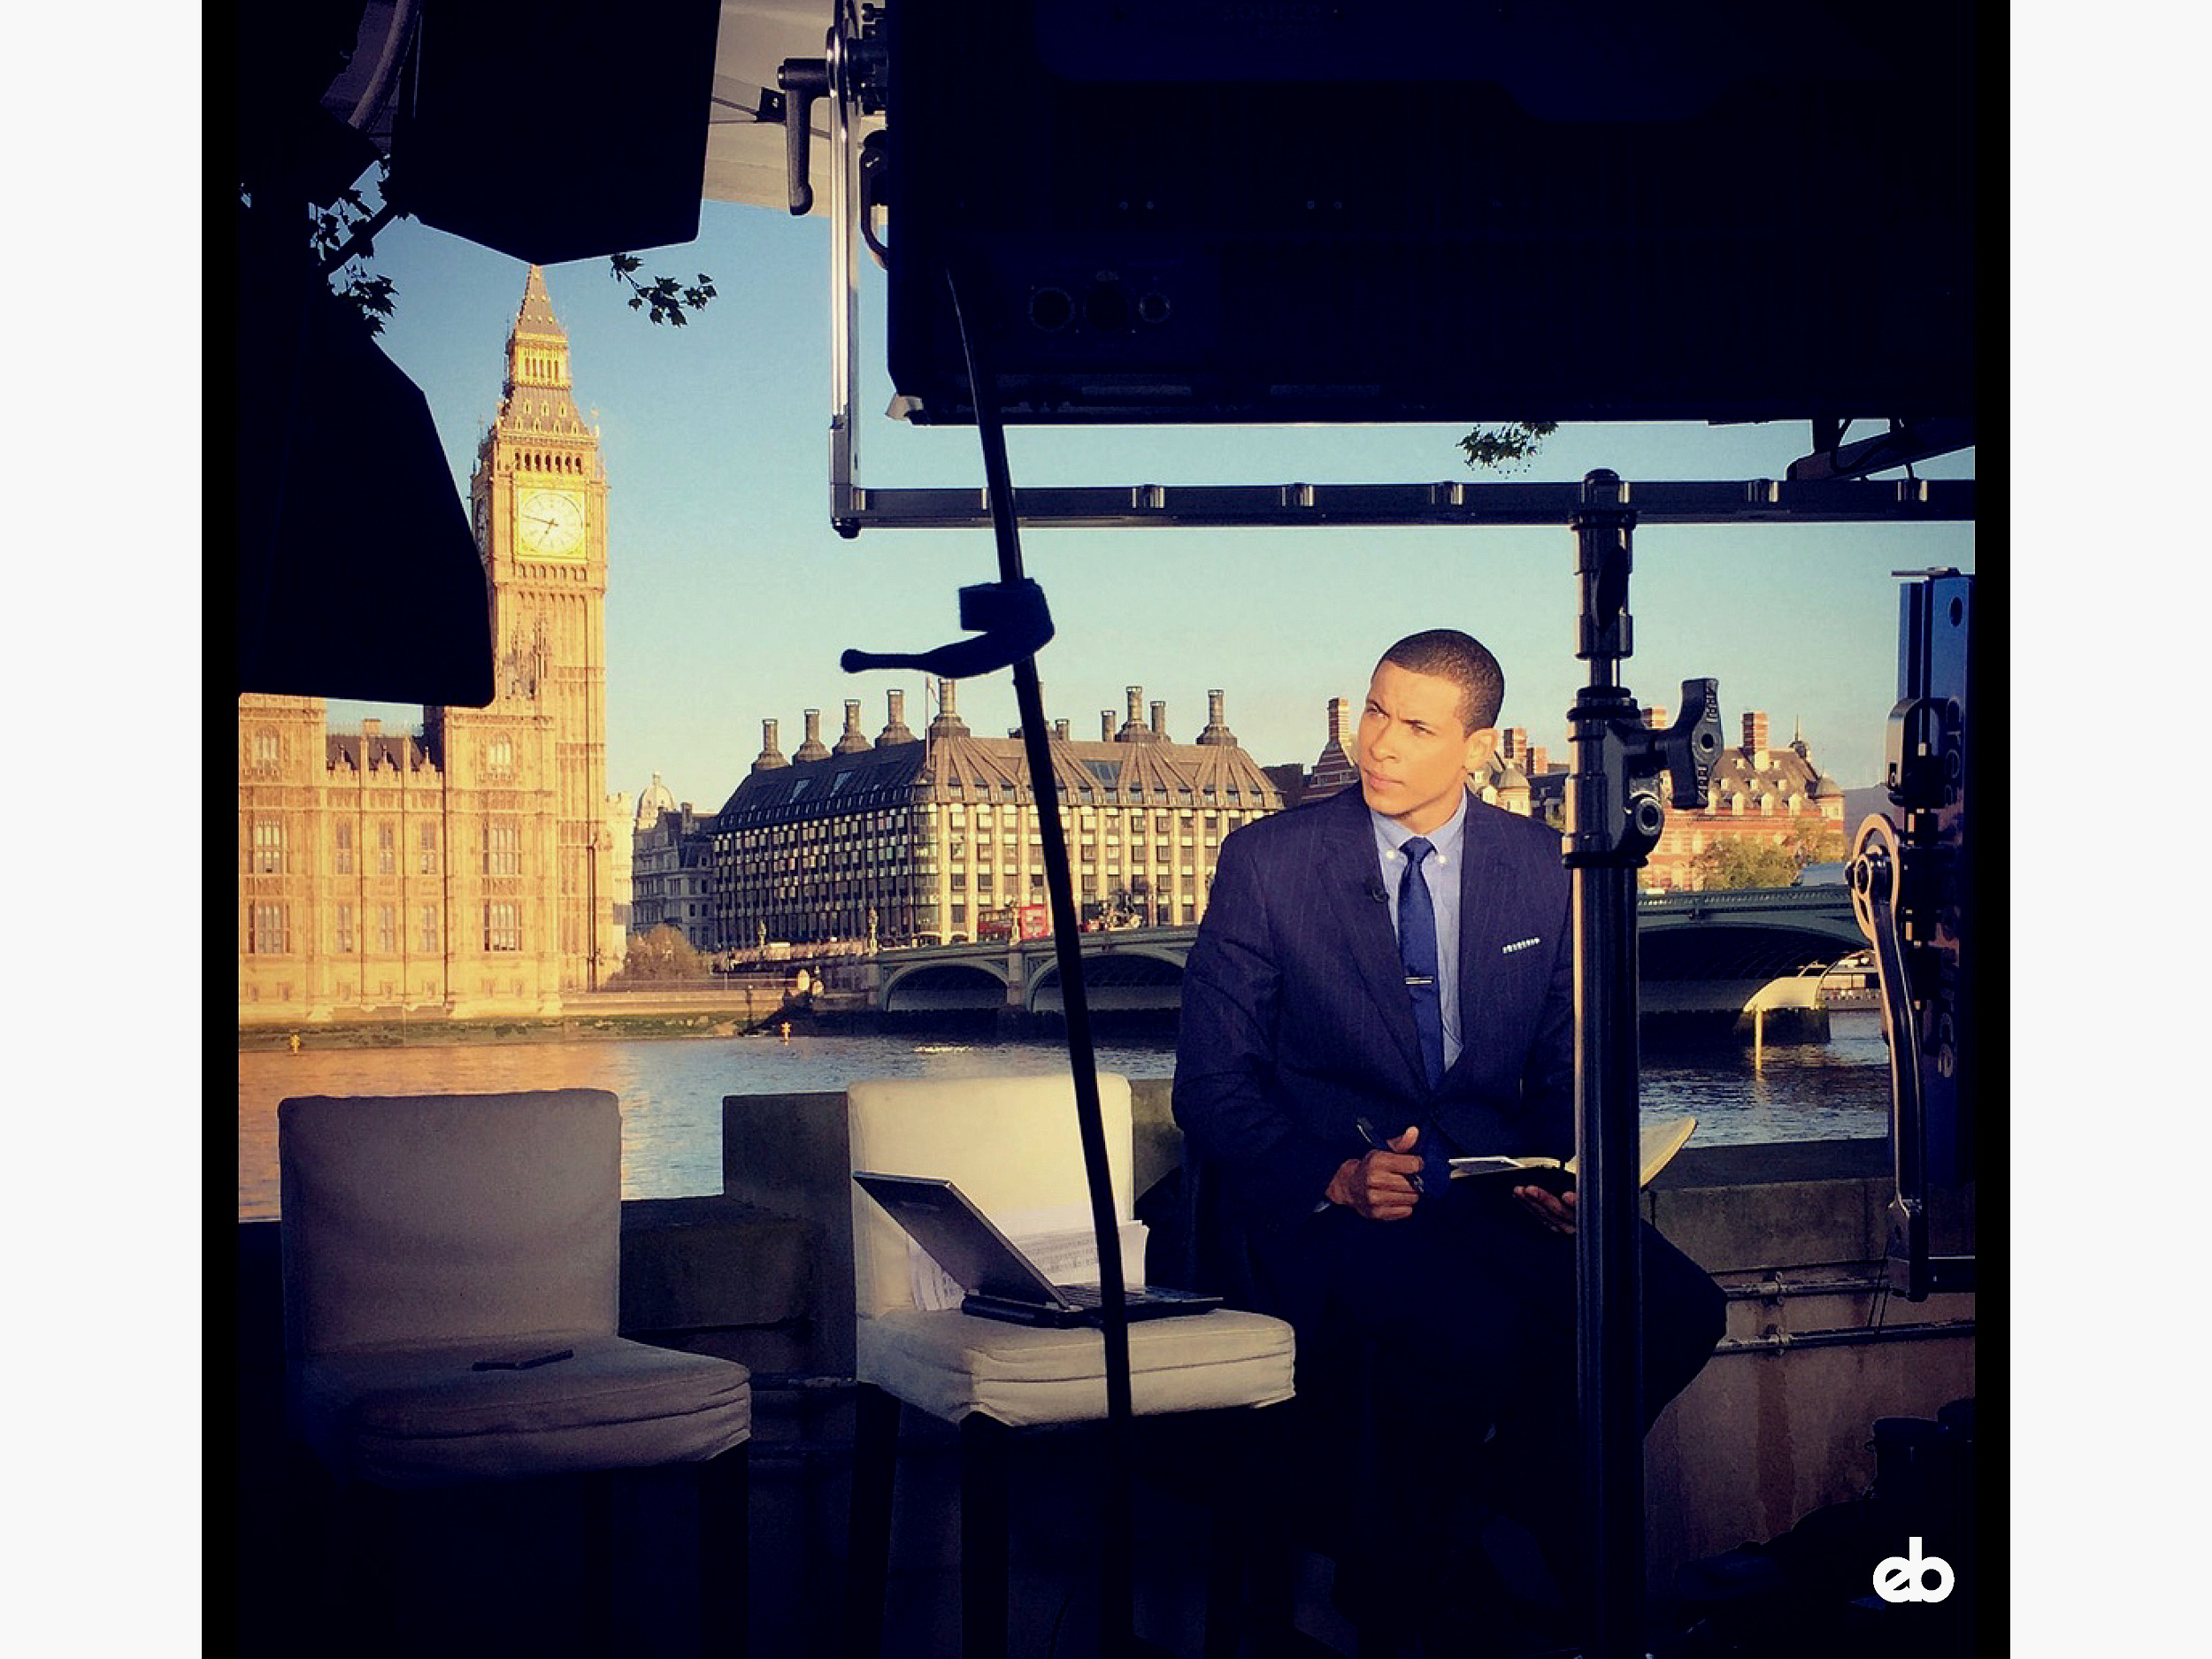 anchoring 'cnn newsroom' from outside parliament in london was a real full-circle moment for me, as it was the first time i did so from my home country